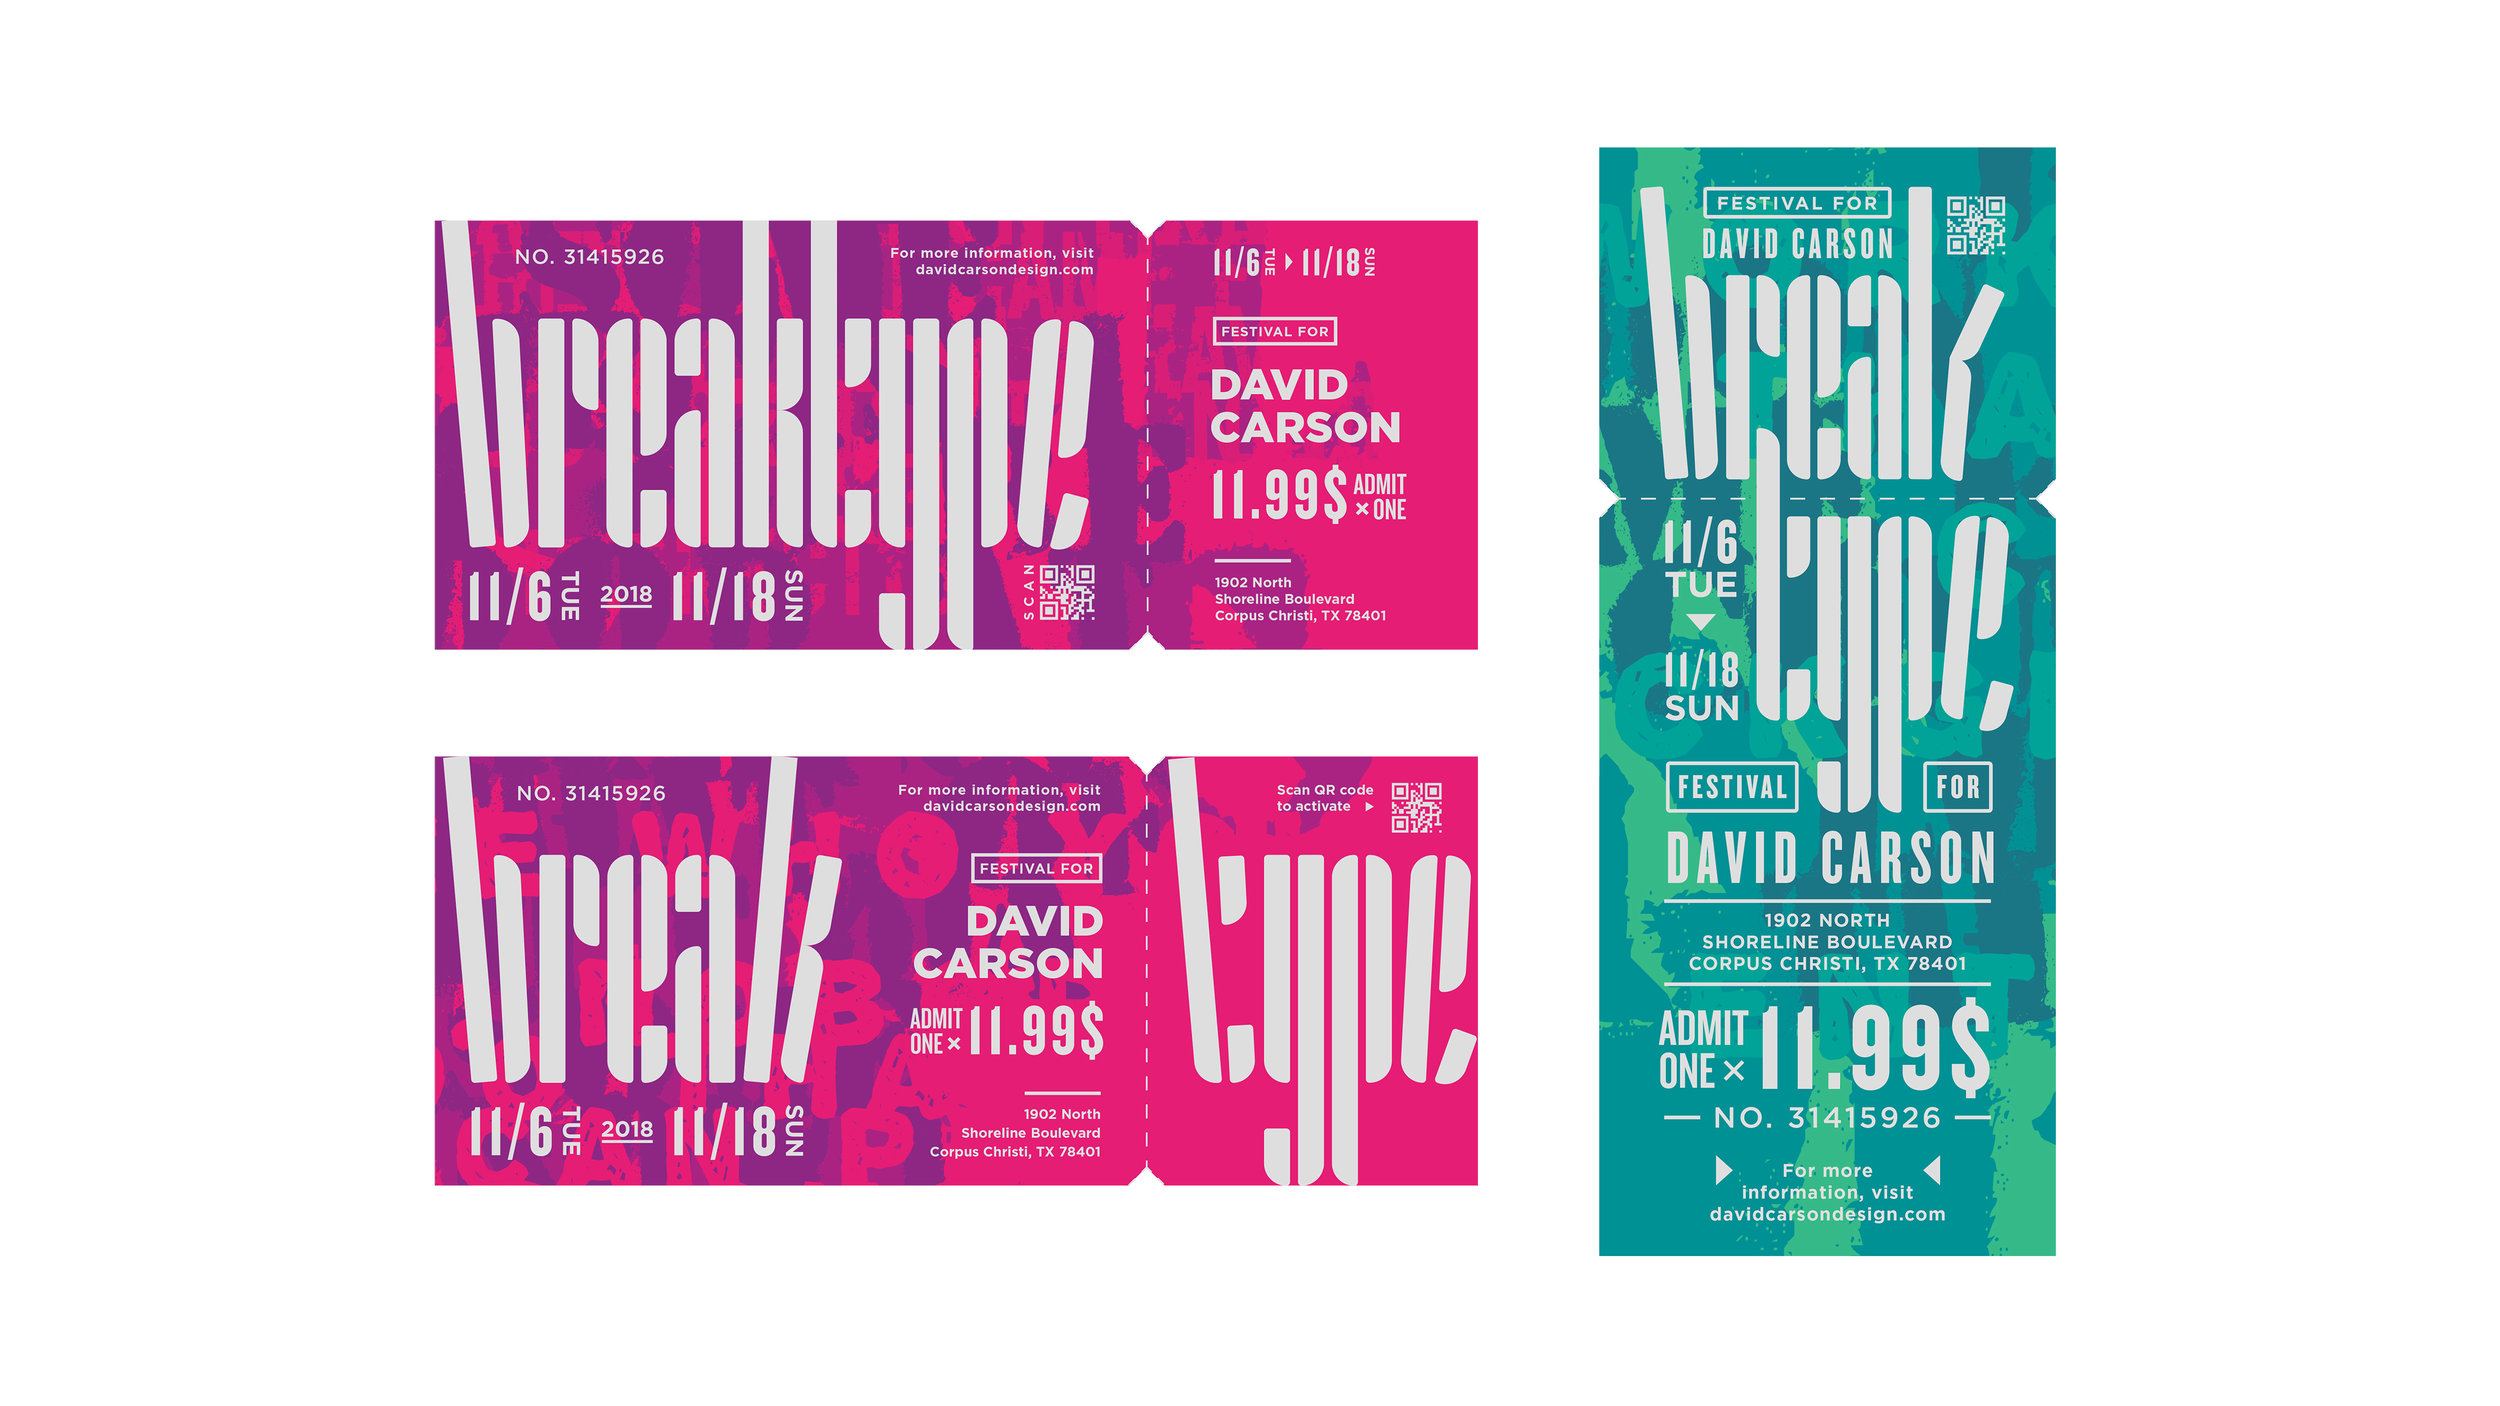 Break type festival ticket color iteration | Max Li, Freshman